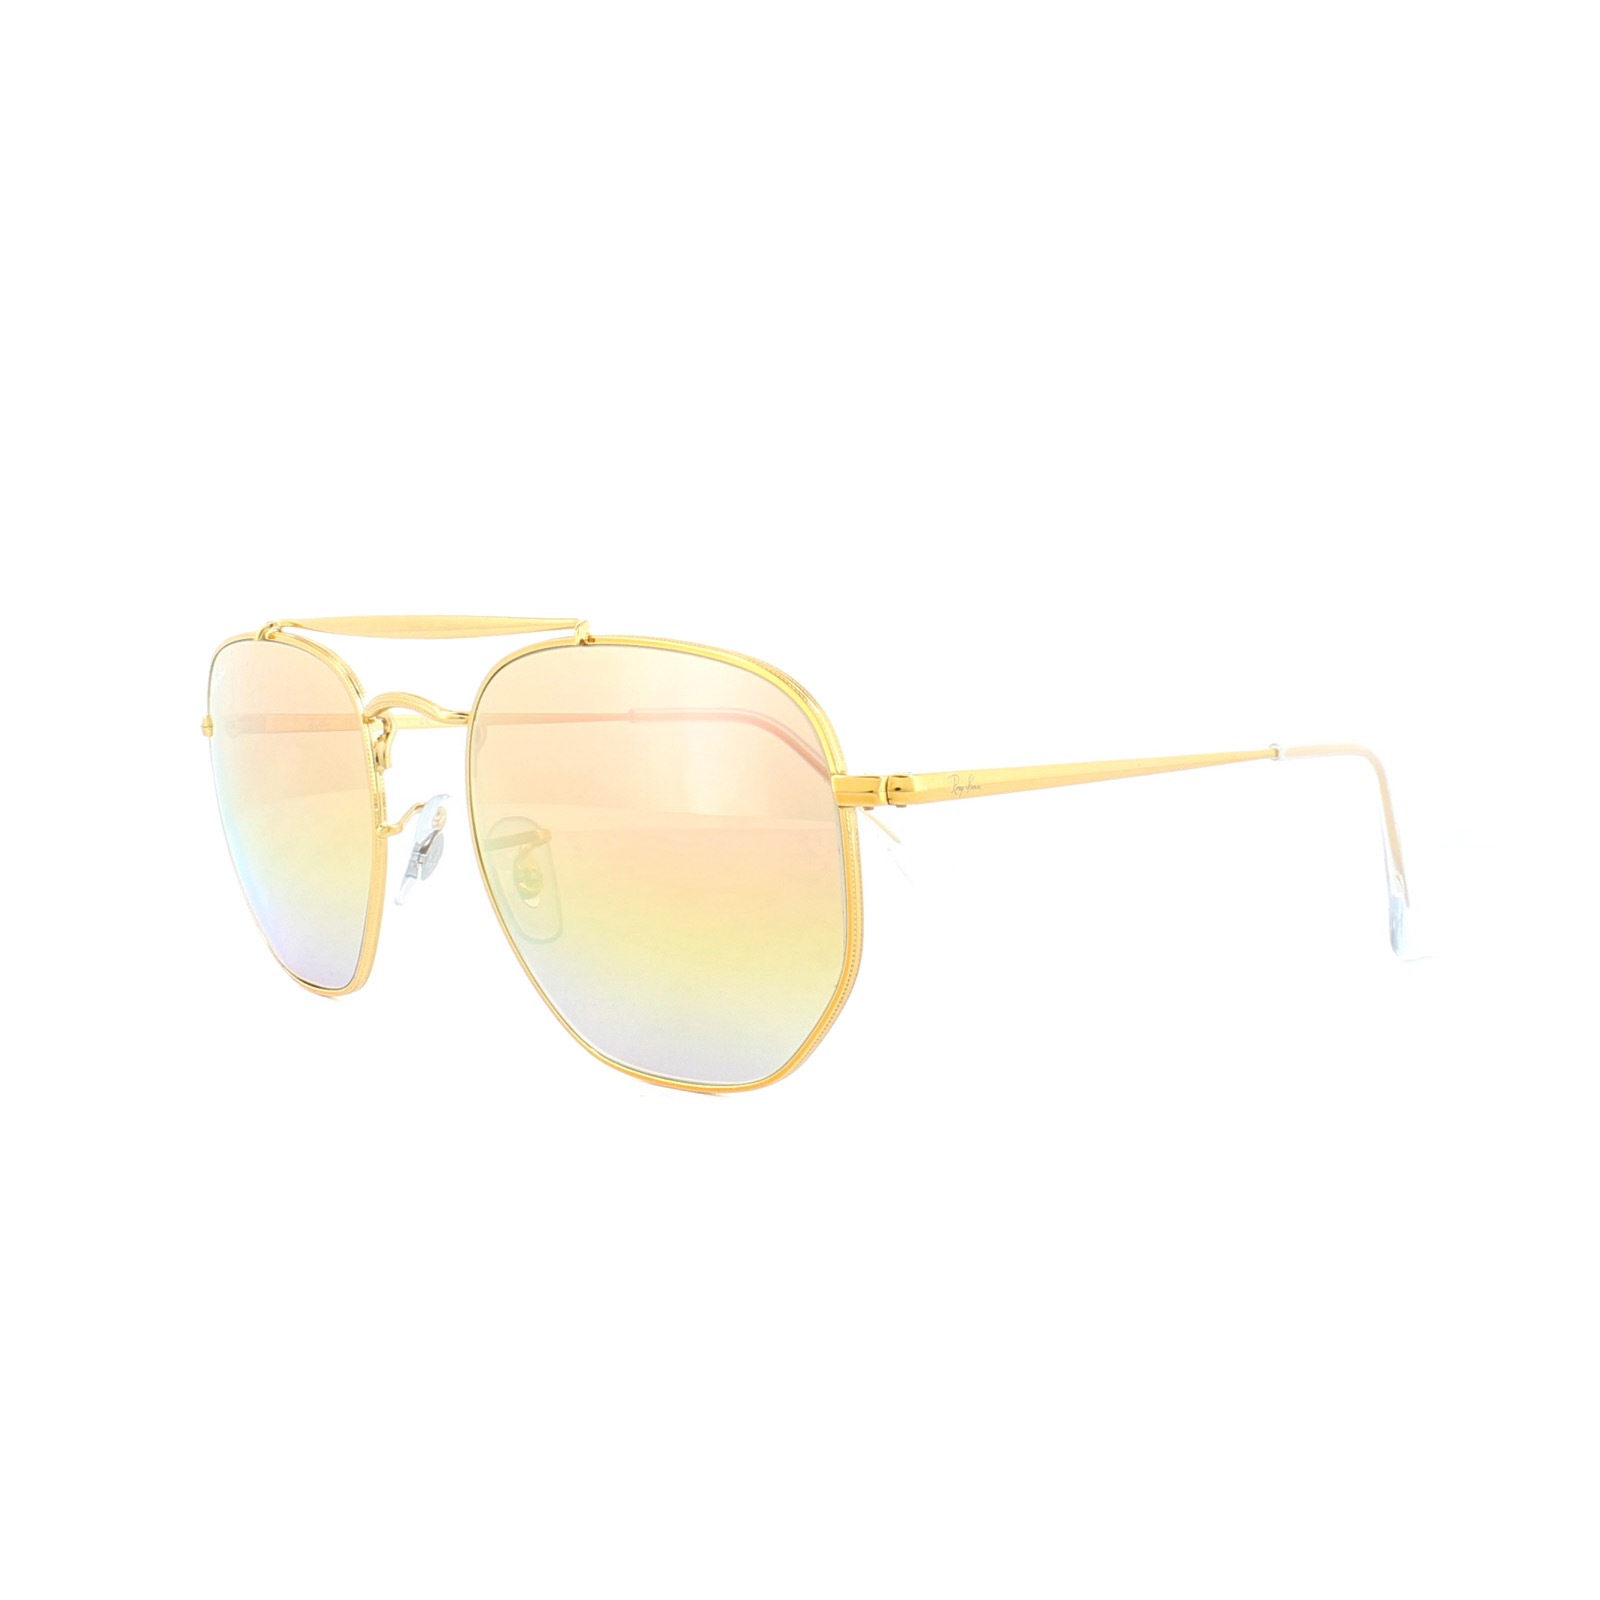 6a90723dad3 Sentinel Ray-Ban Sunglasses Marshal 3648 9001I1 Bronze Copper Pink Gradient  Mirror